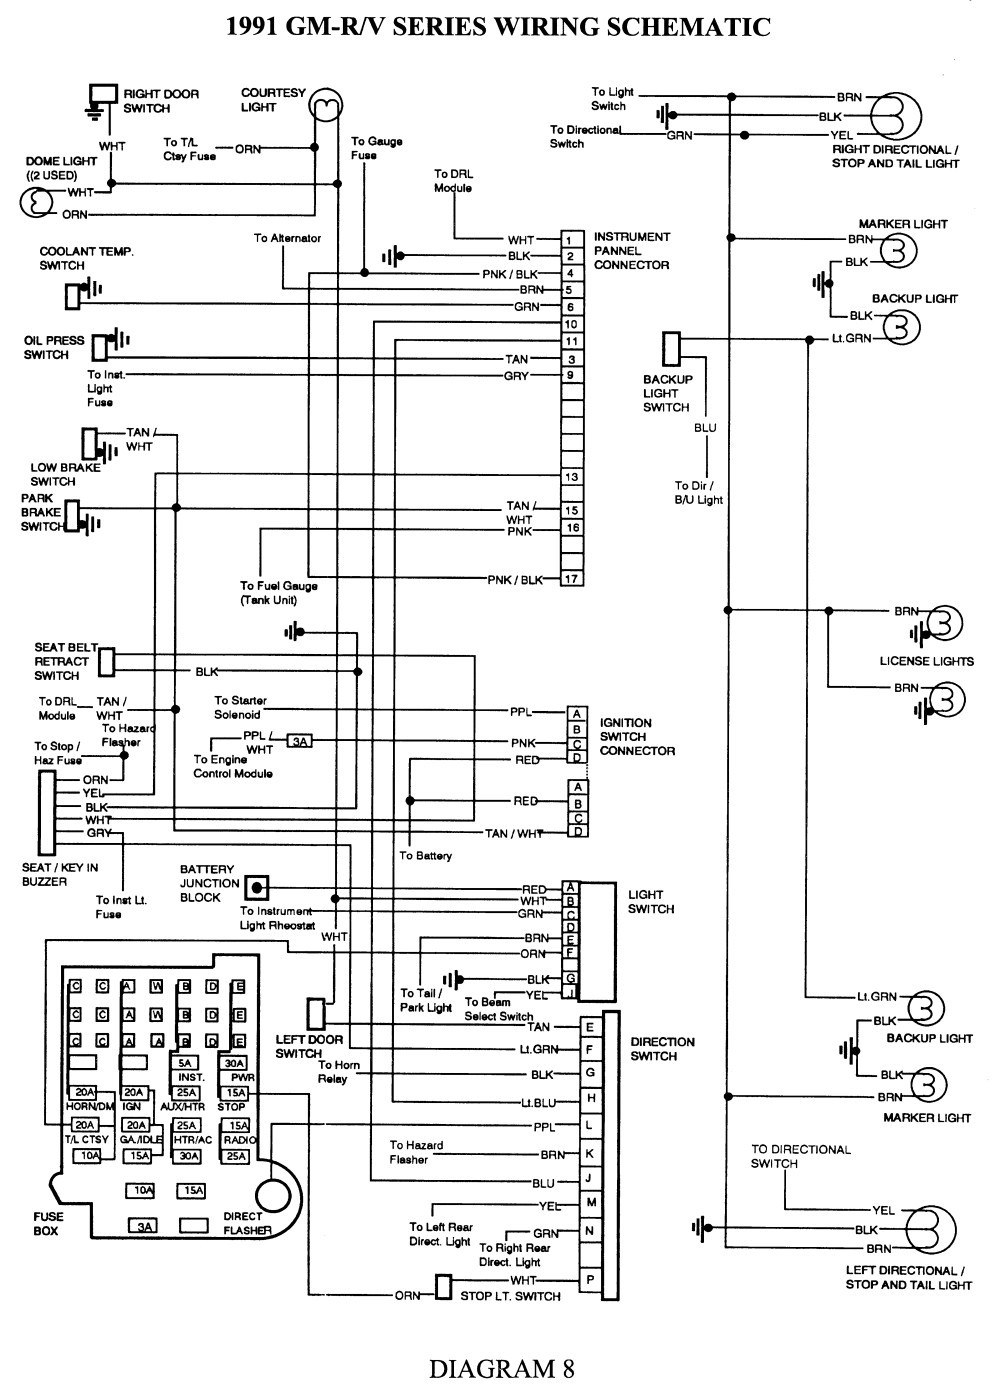 2002 chevy suburban radio wiring diagram